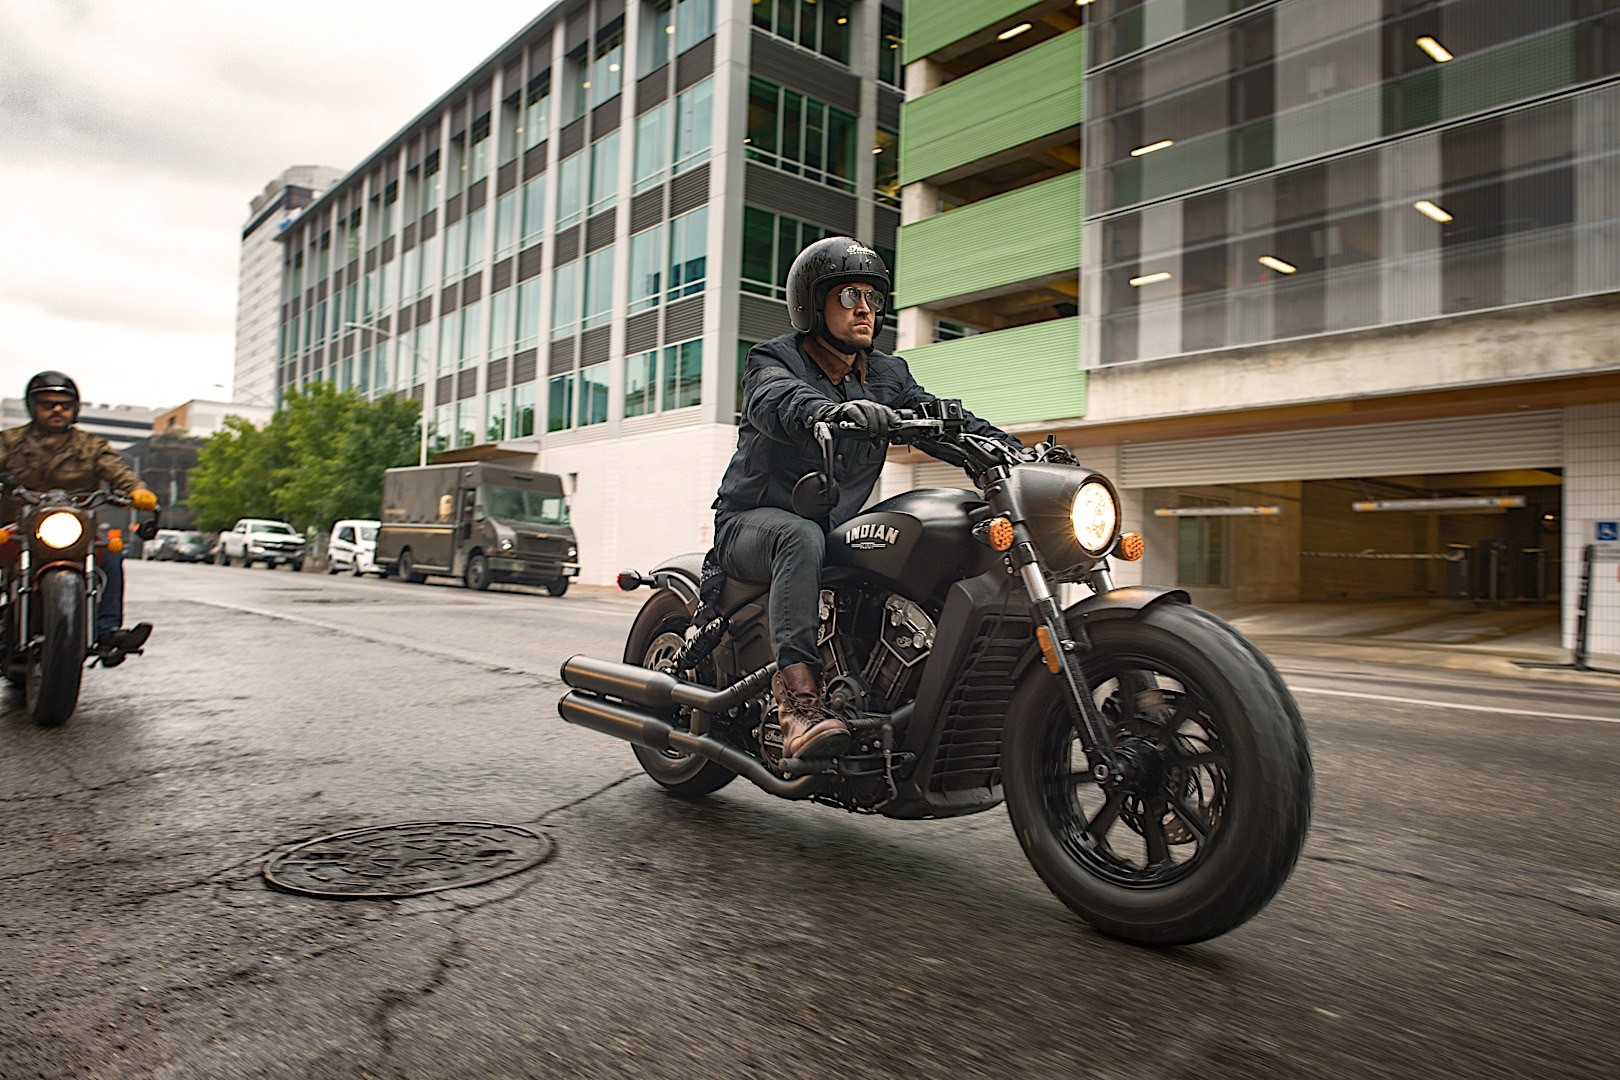 New Indian Motorcycle Dealer In Florida Celebrating The